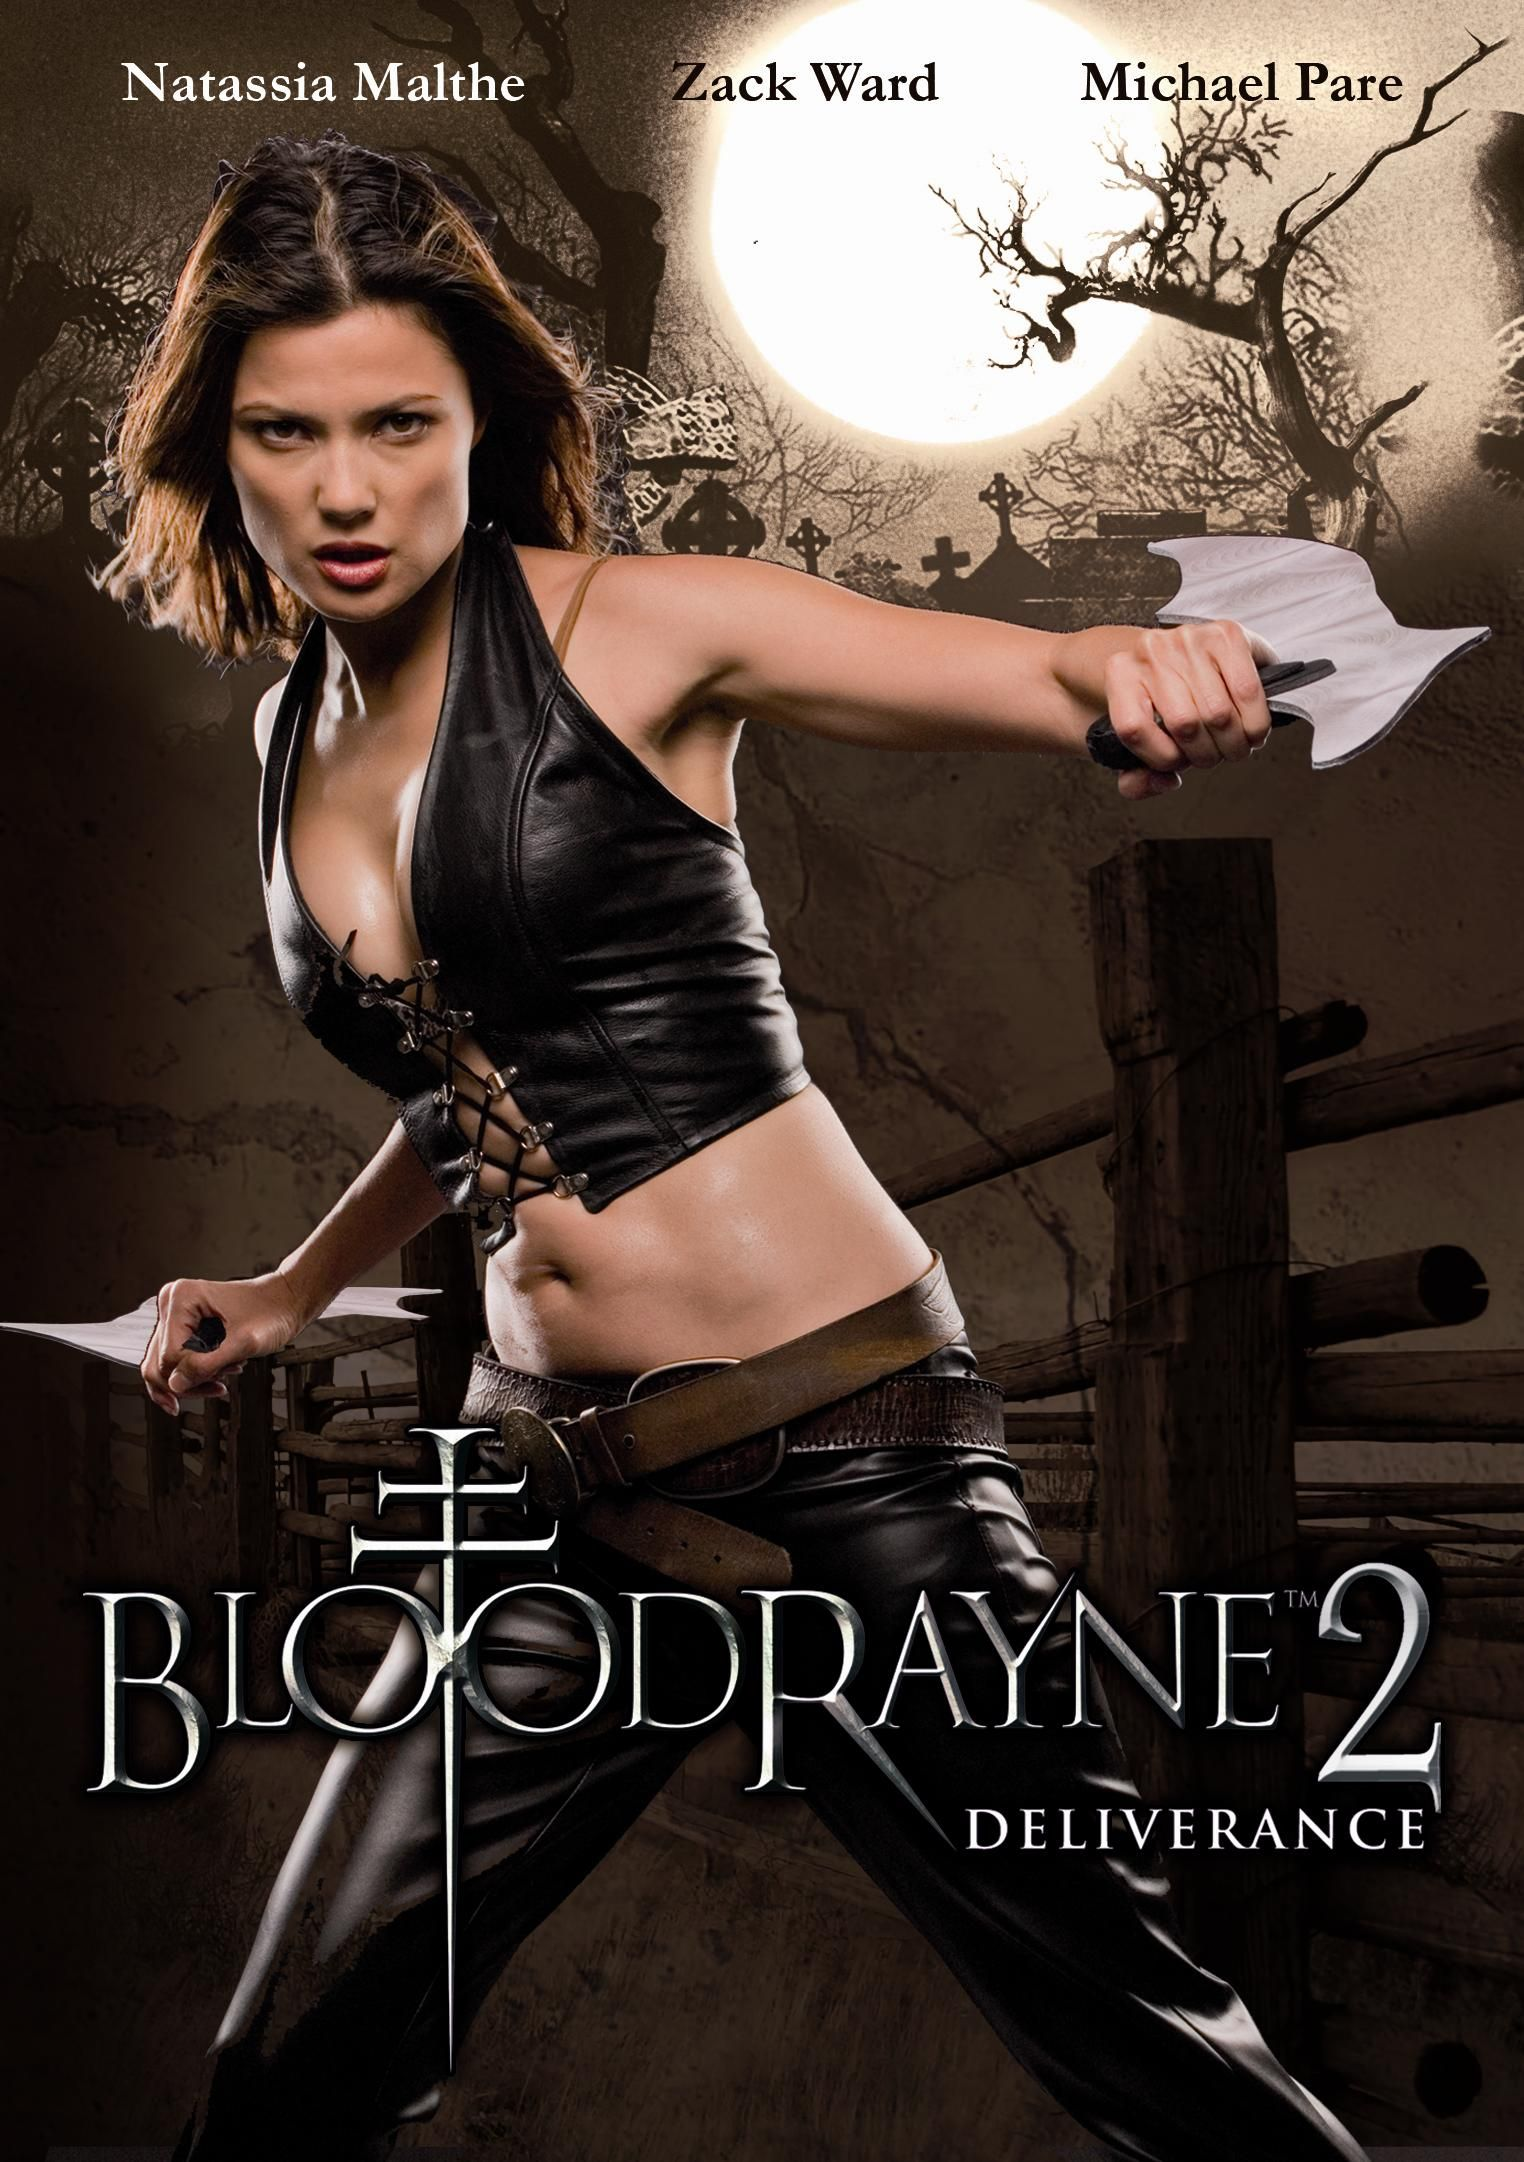 Watch Bloodrayne 2: Deliverance Online | Watch Full ...